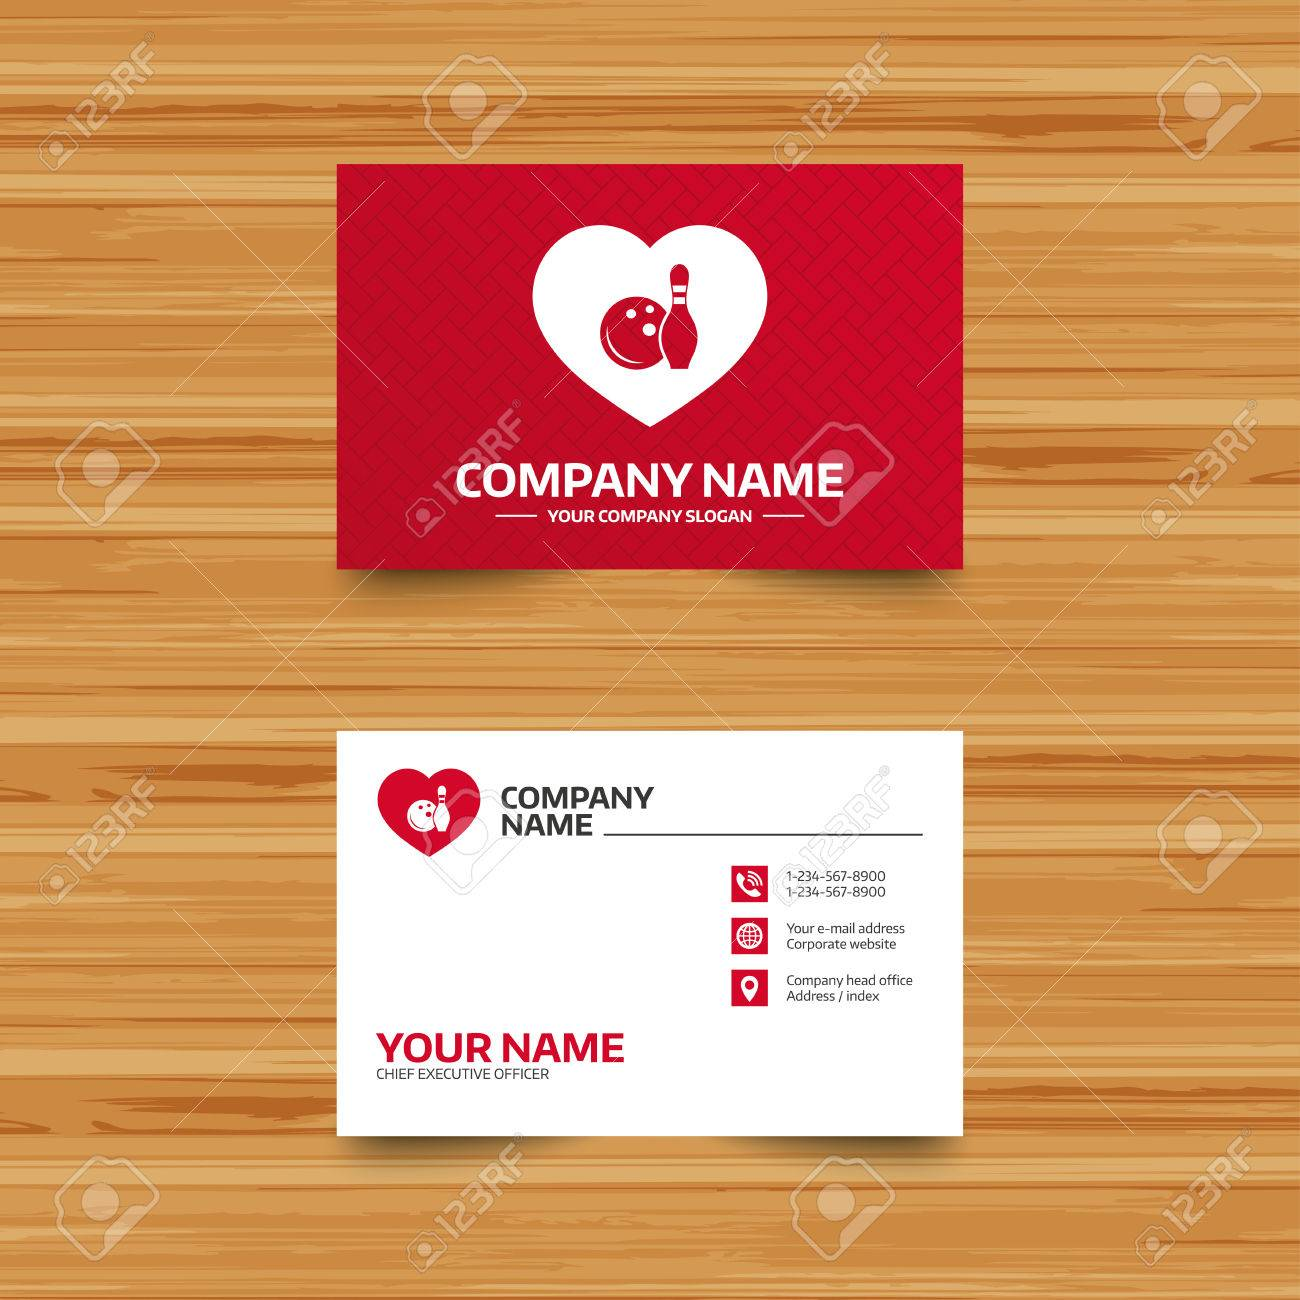 Business card printing hackensack nj choice image card design and business cards in elizabeth nj gallery card design and card template business cards in elizabeth nj reheart Images